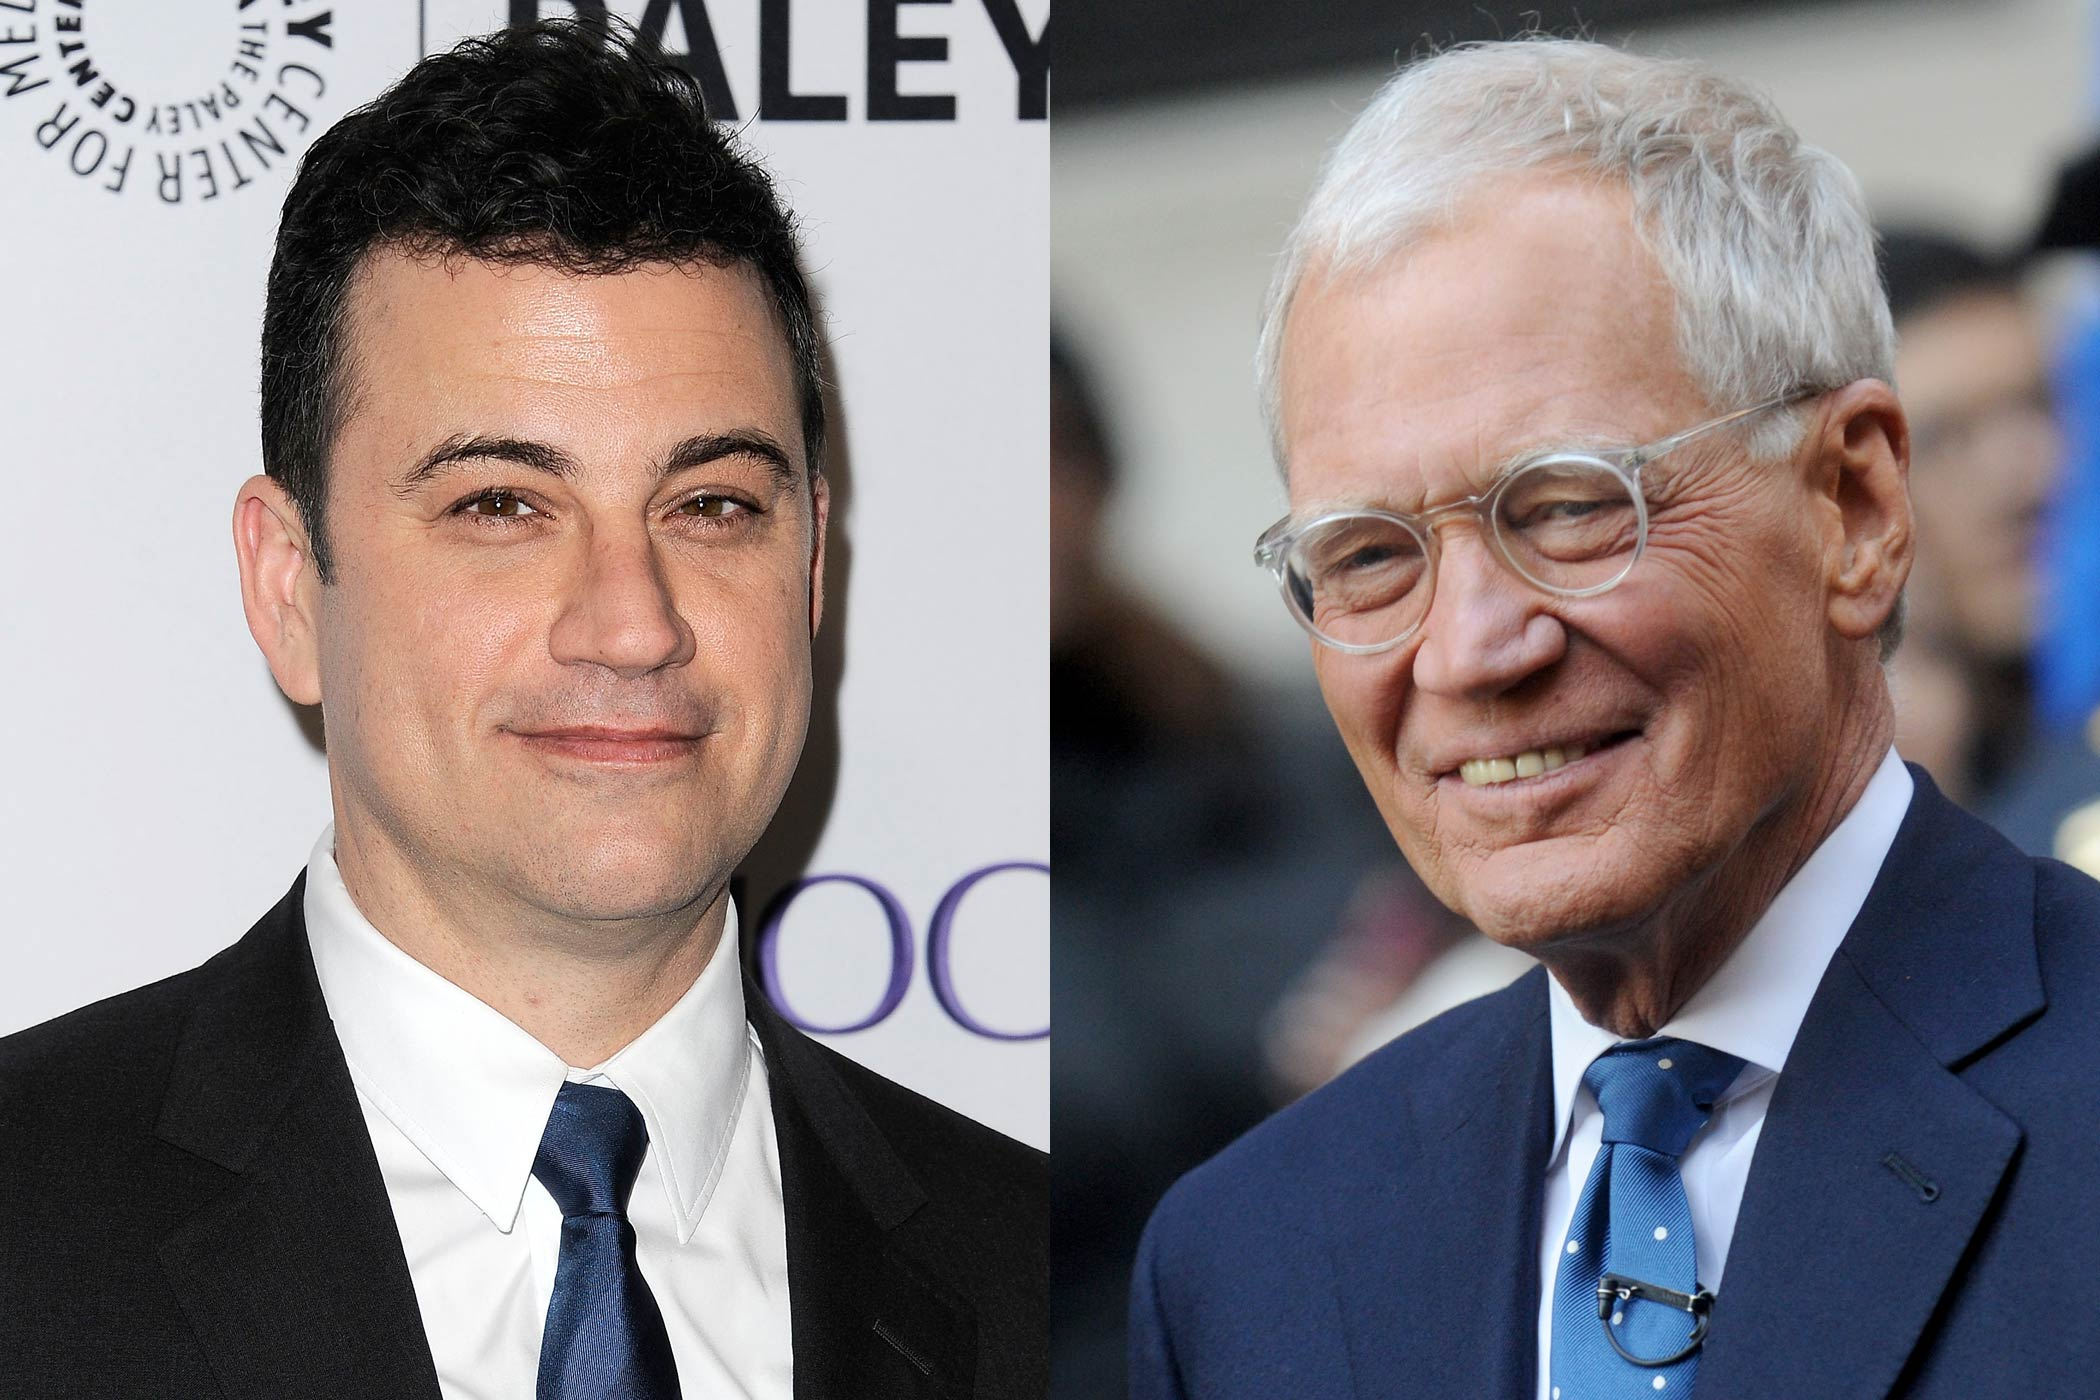 From left: Jimmy Kimmel and David Letterman